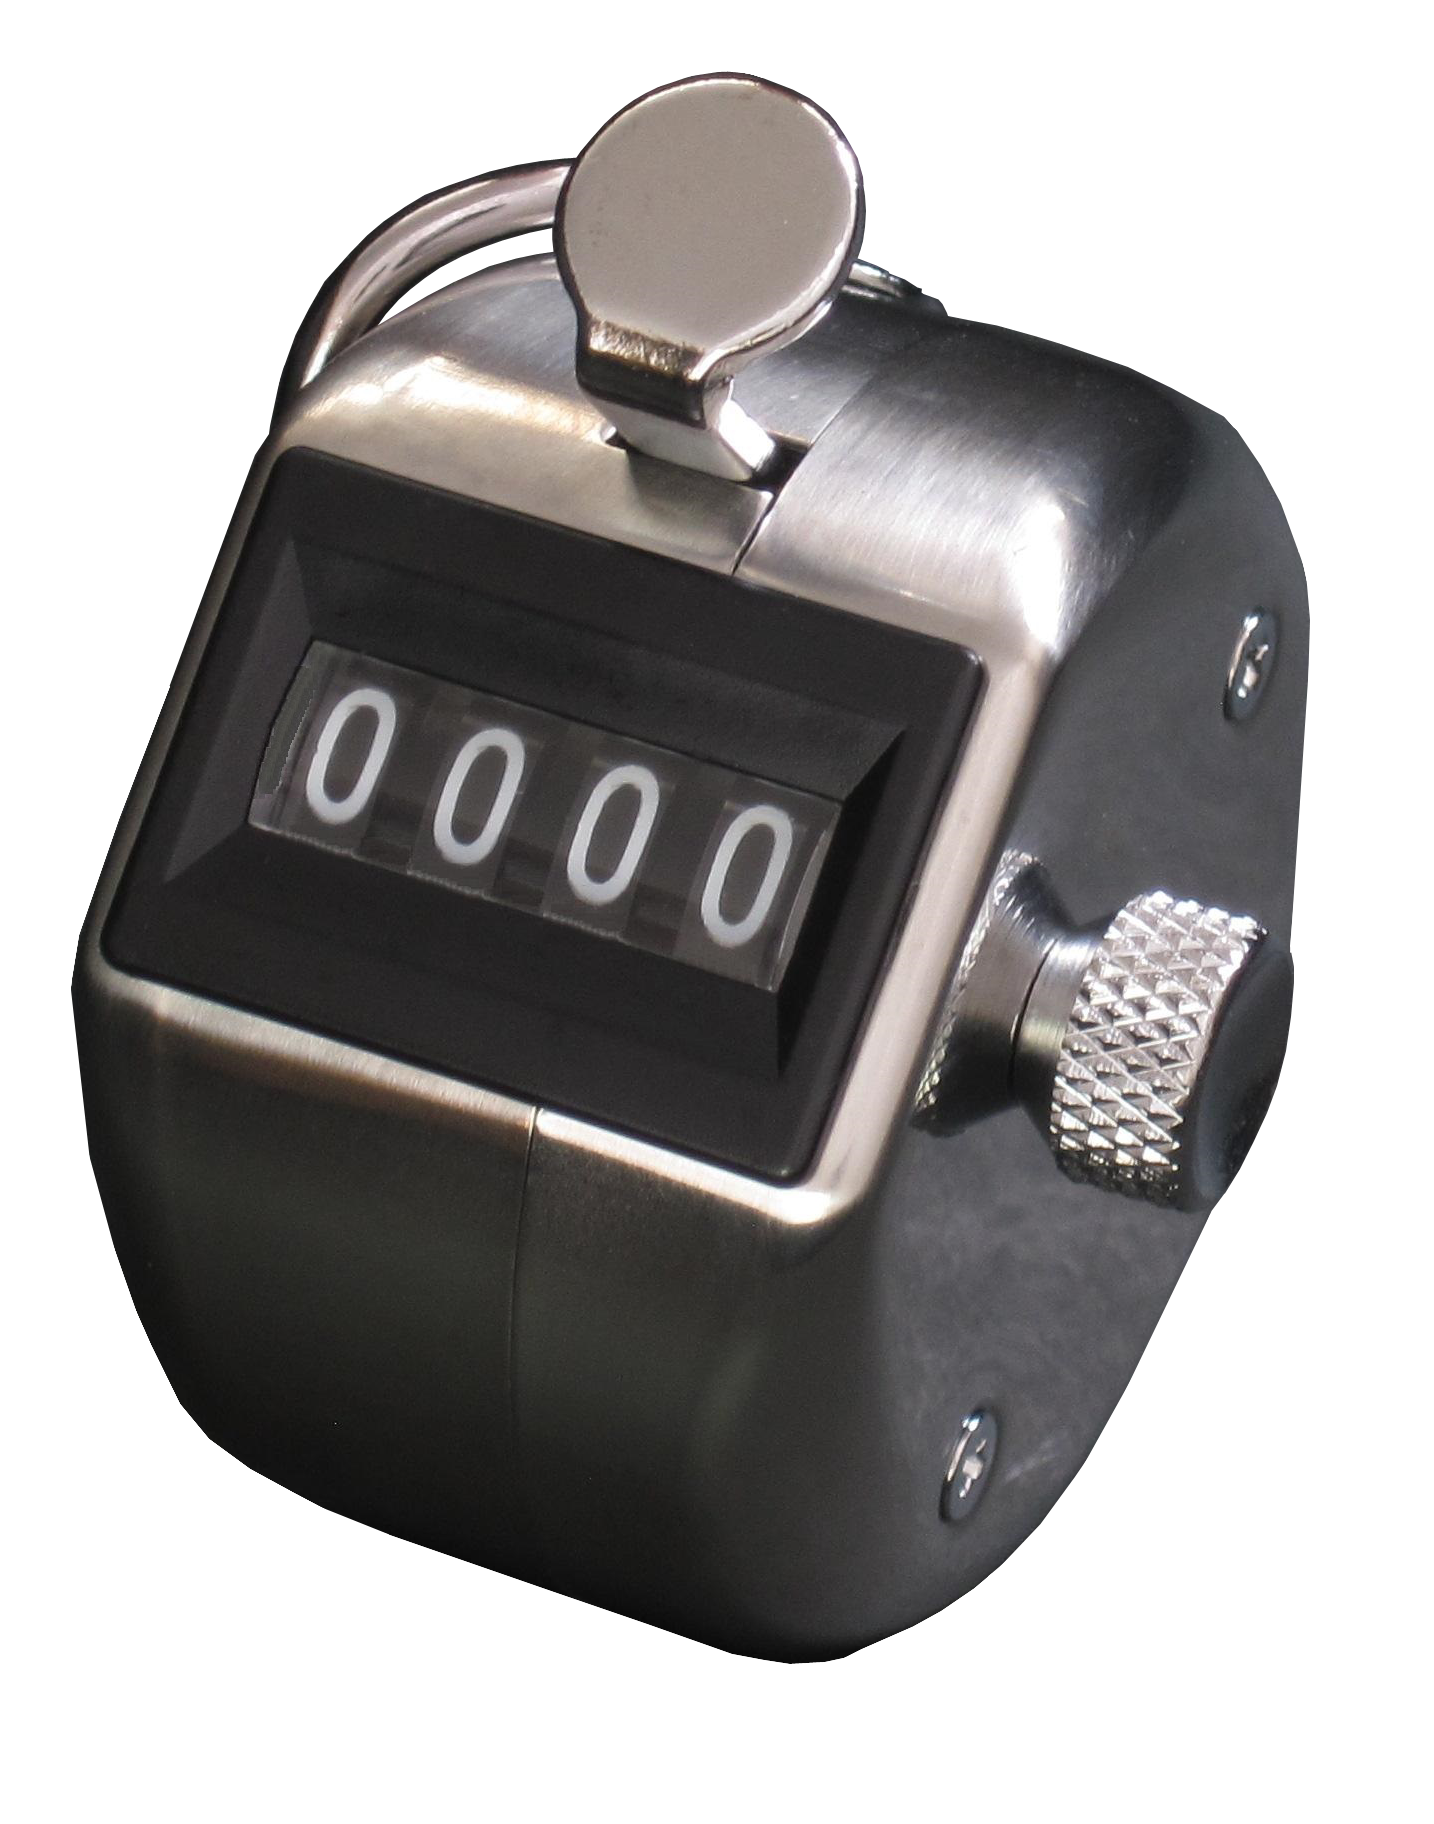 Stainless Steel Tally Counter